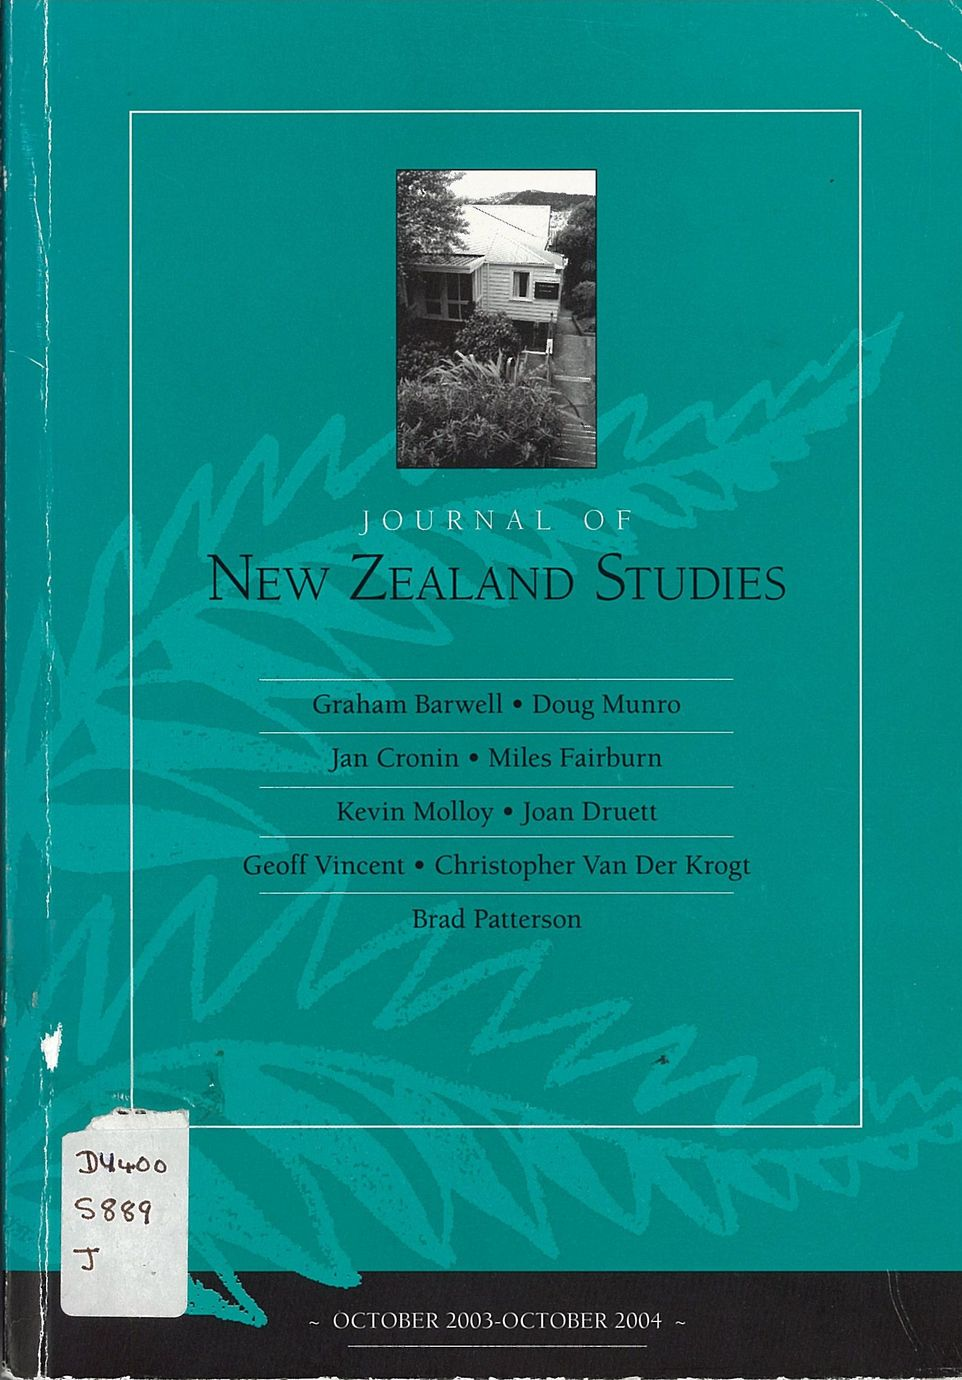 Journal of New Zealand Studies 2004 No. 2/3